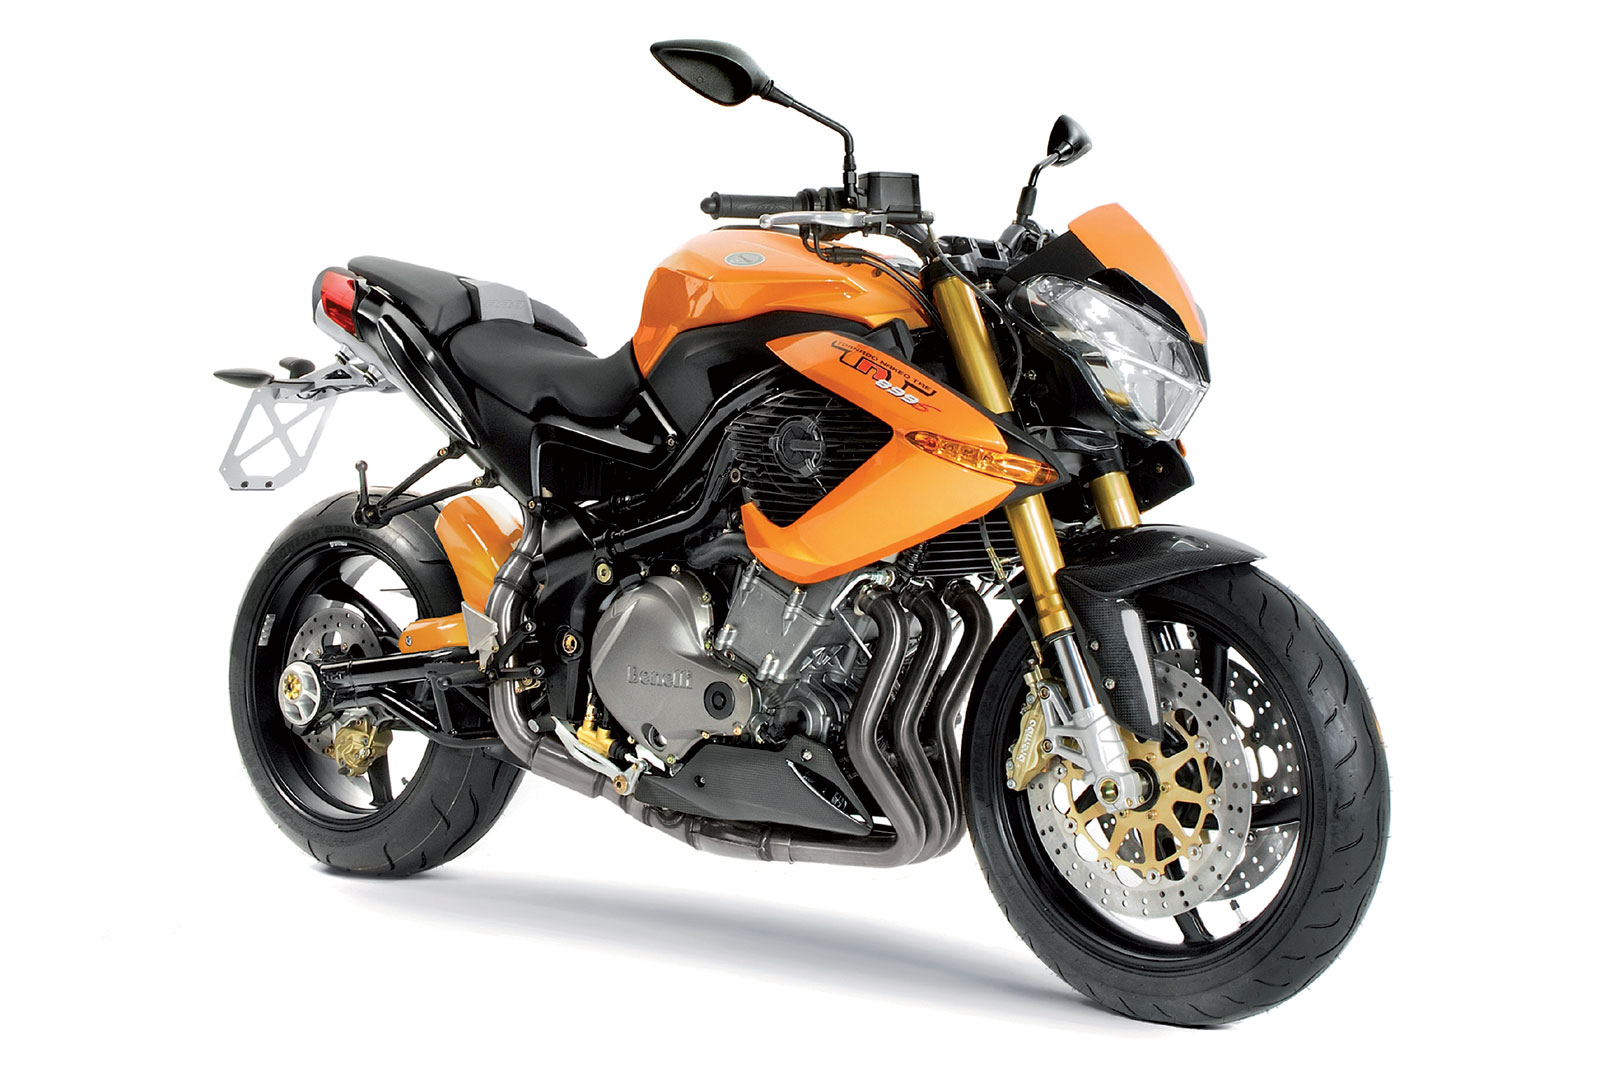 Benelli Tornado Naked Tre 899 s 2008 #1